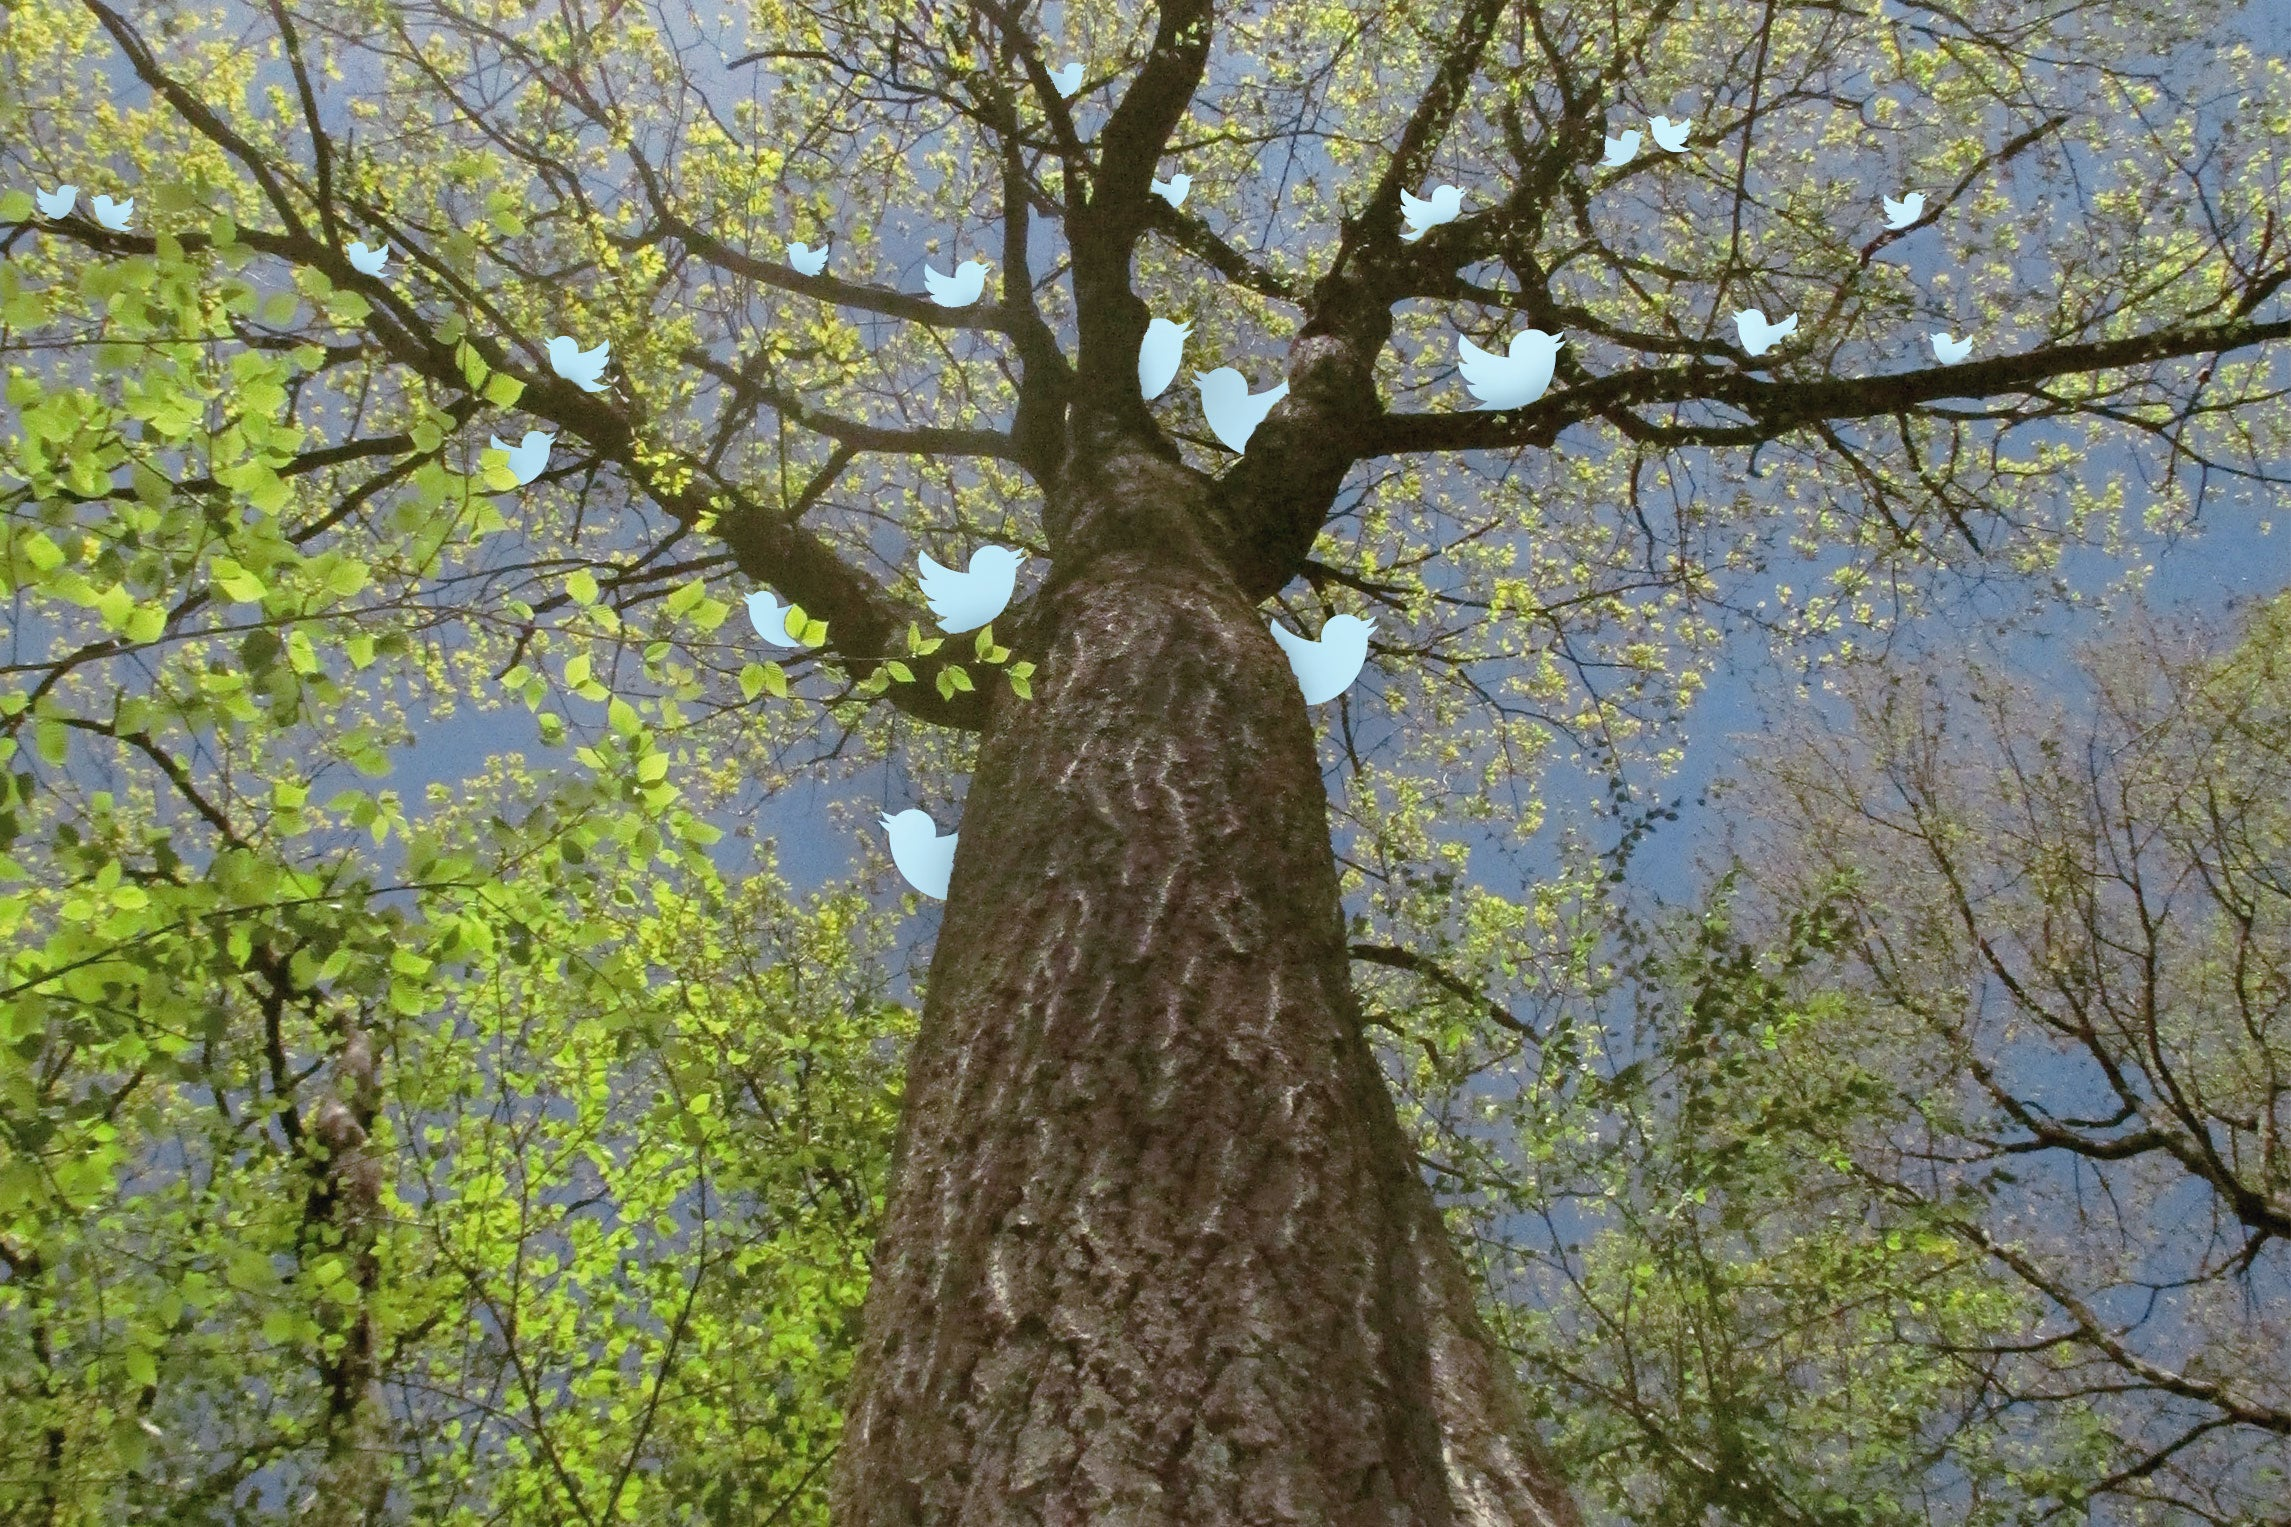 Tree branches with blue birds